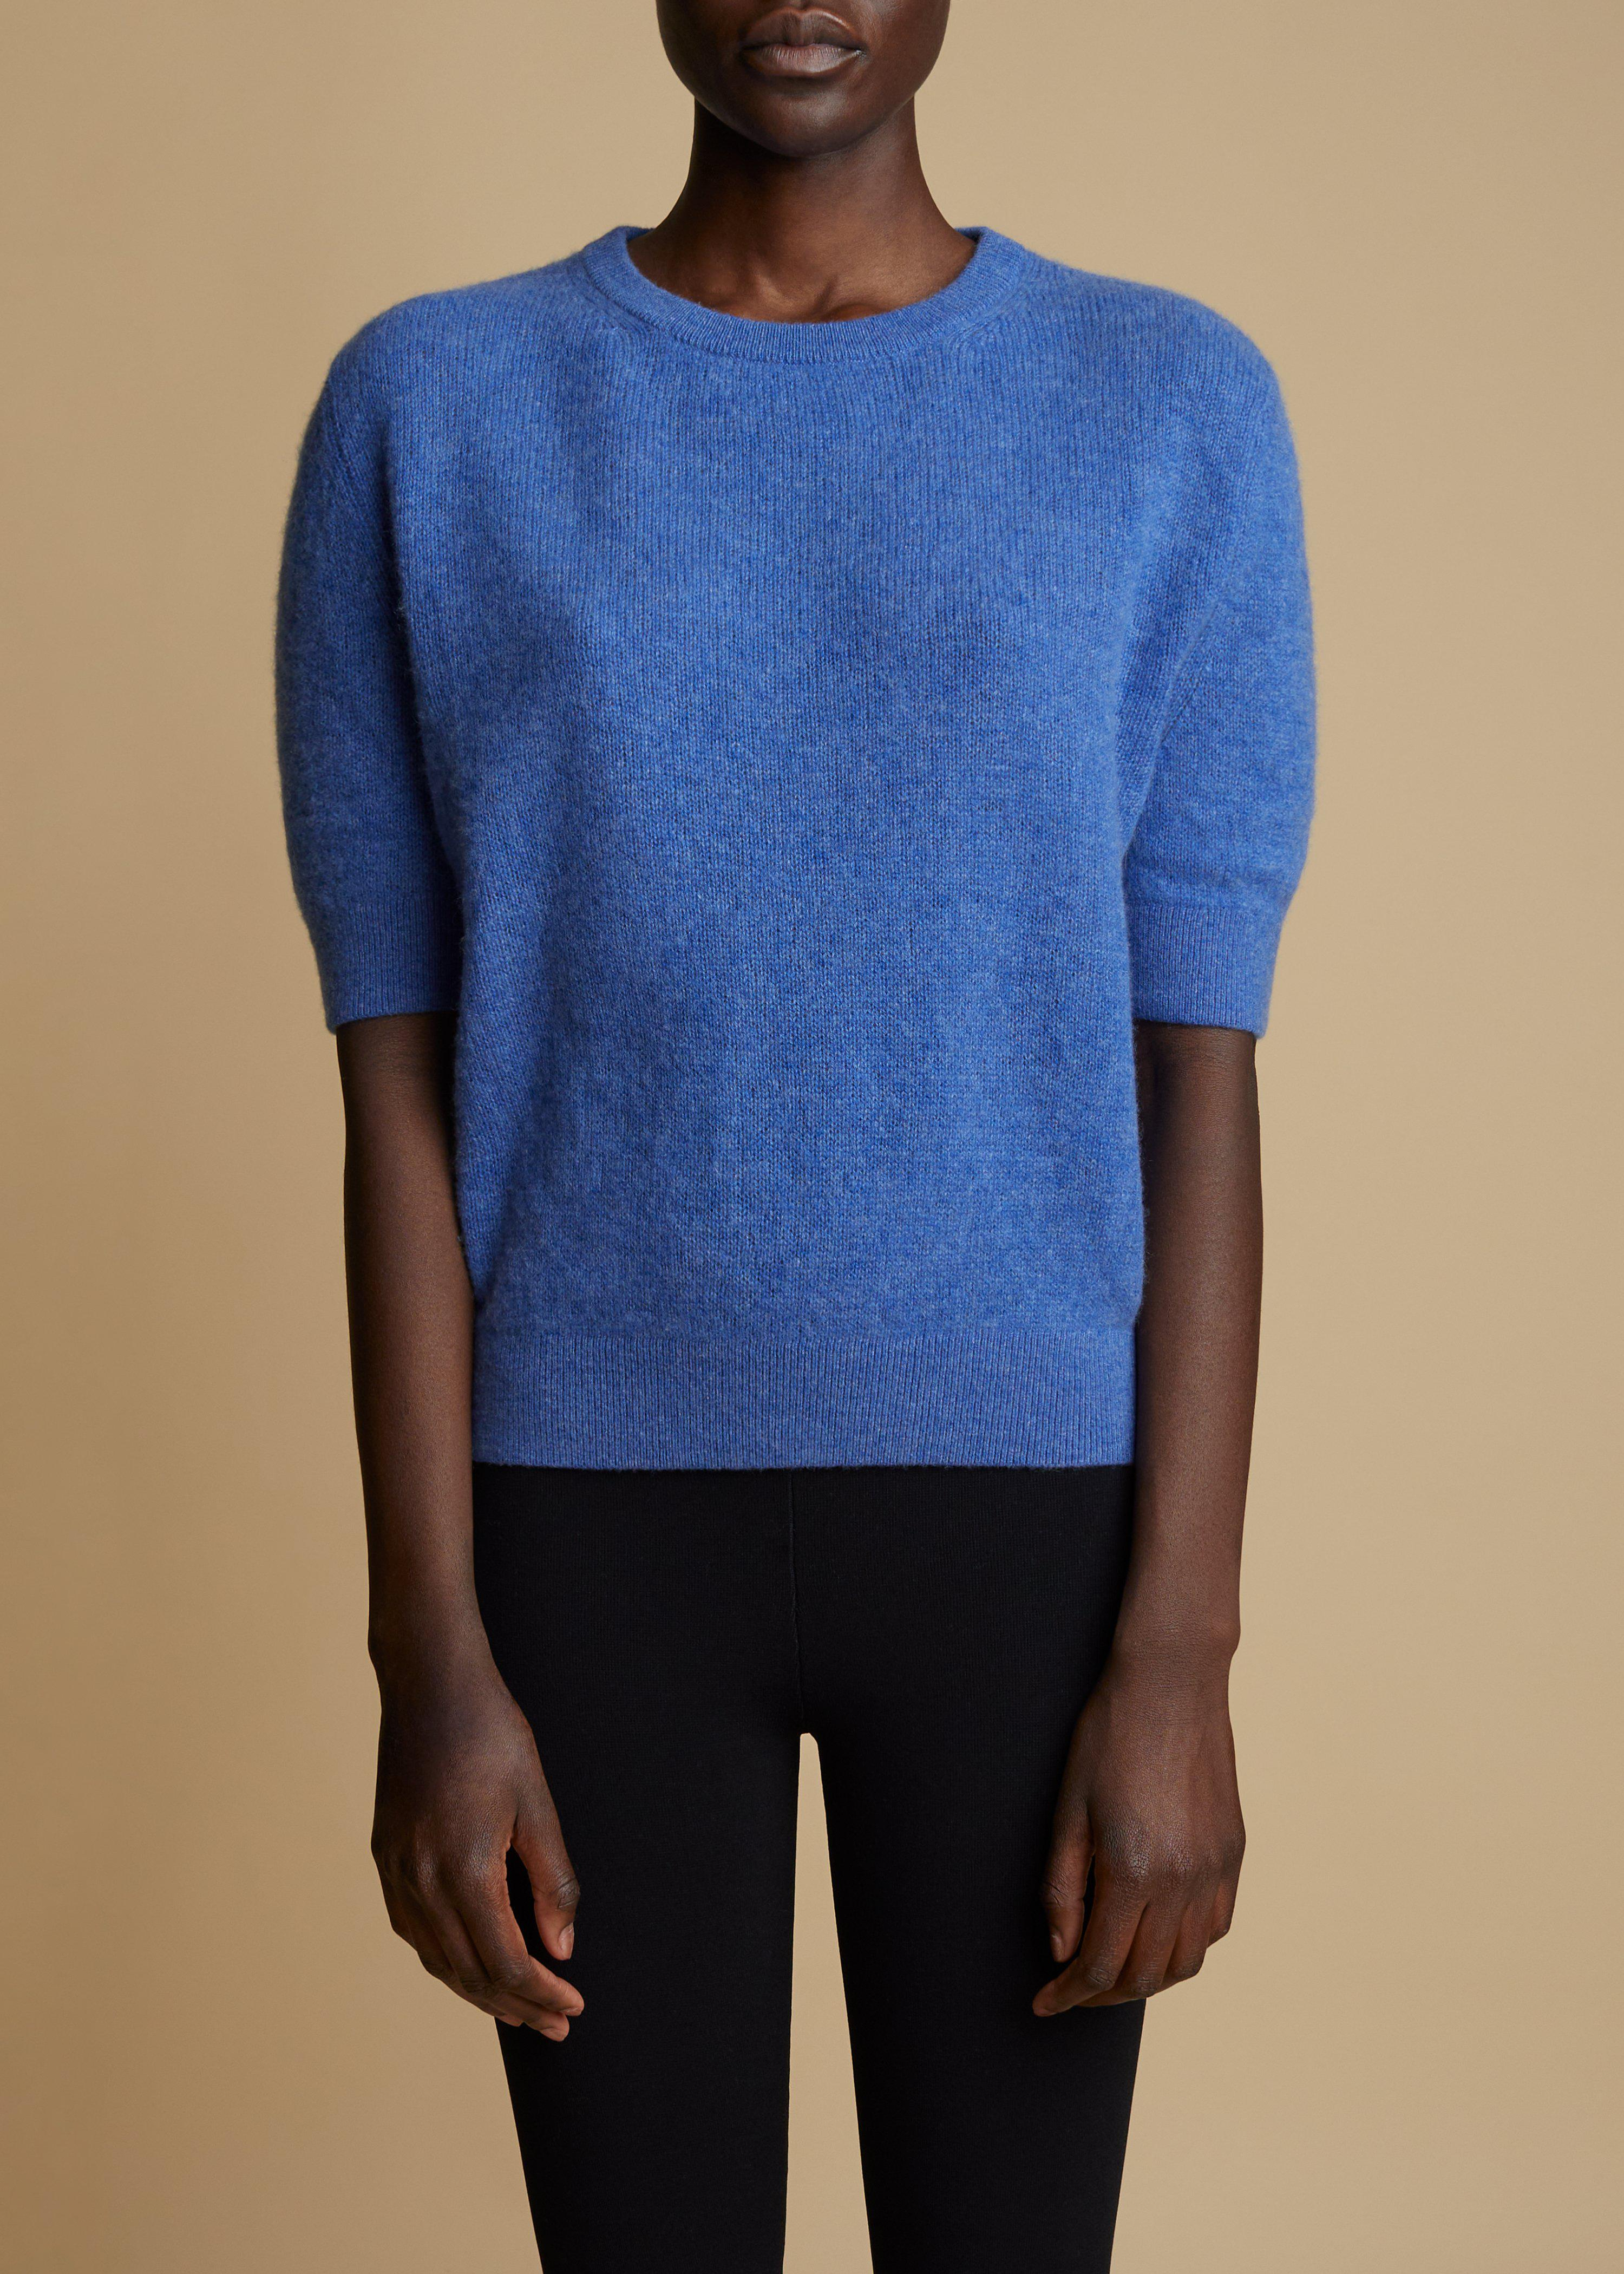 The Dianna Sweater in Sky Blue